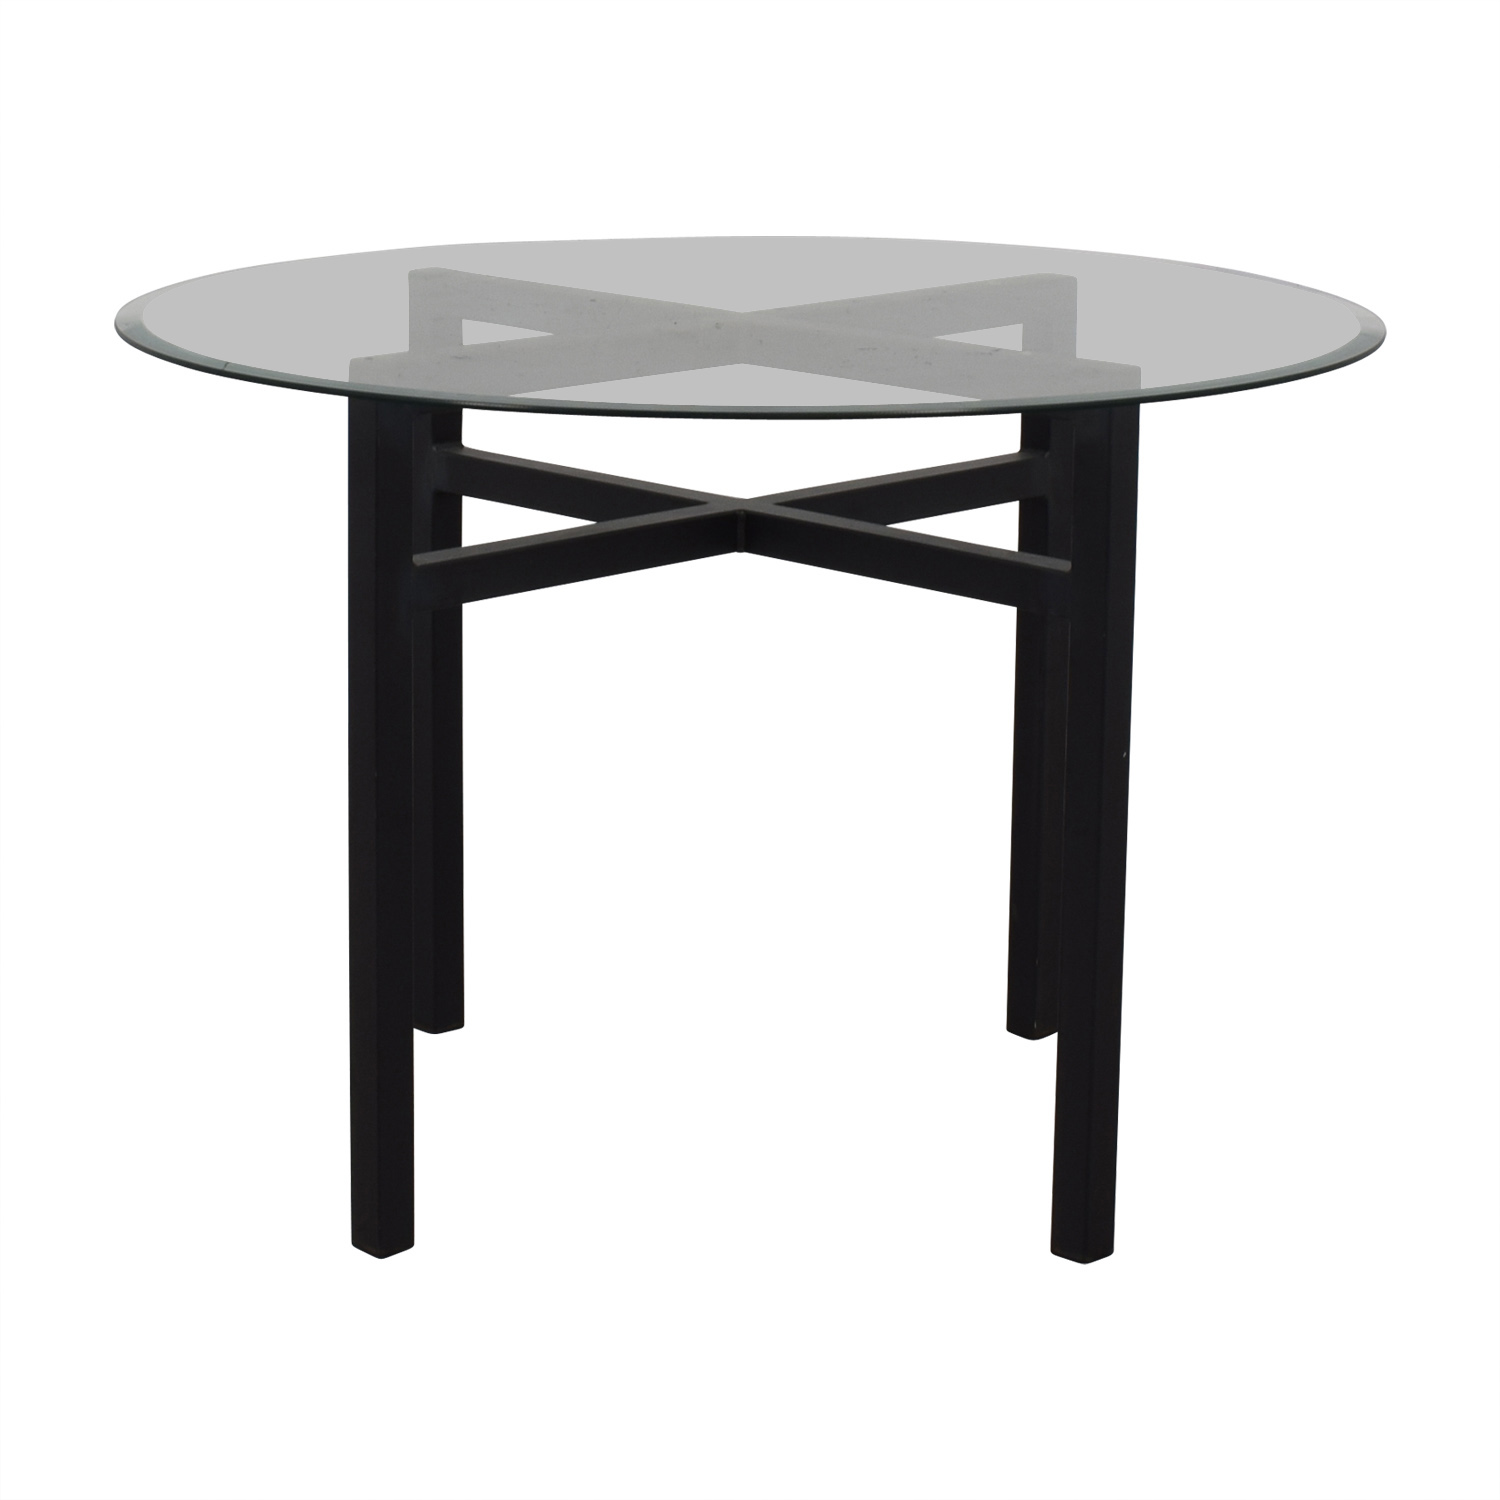 Room & Board Room & Board Benson Round Glass Top Dining Table Coffee Tables